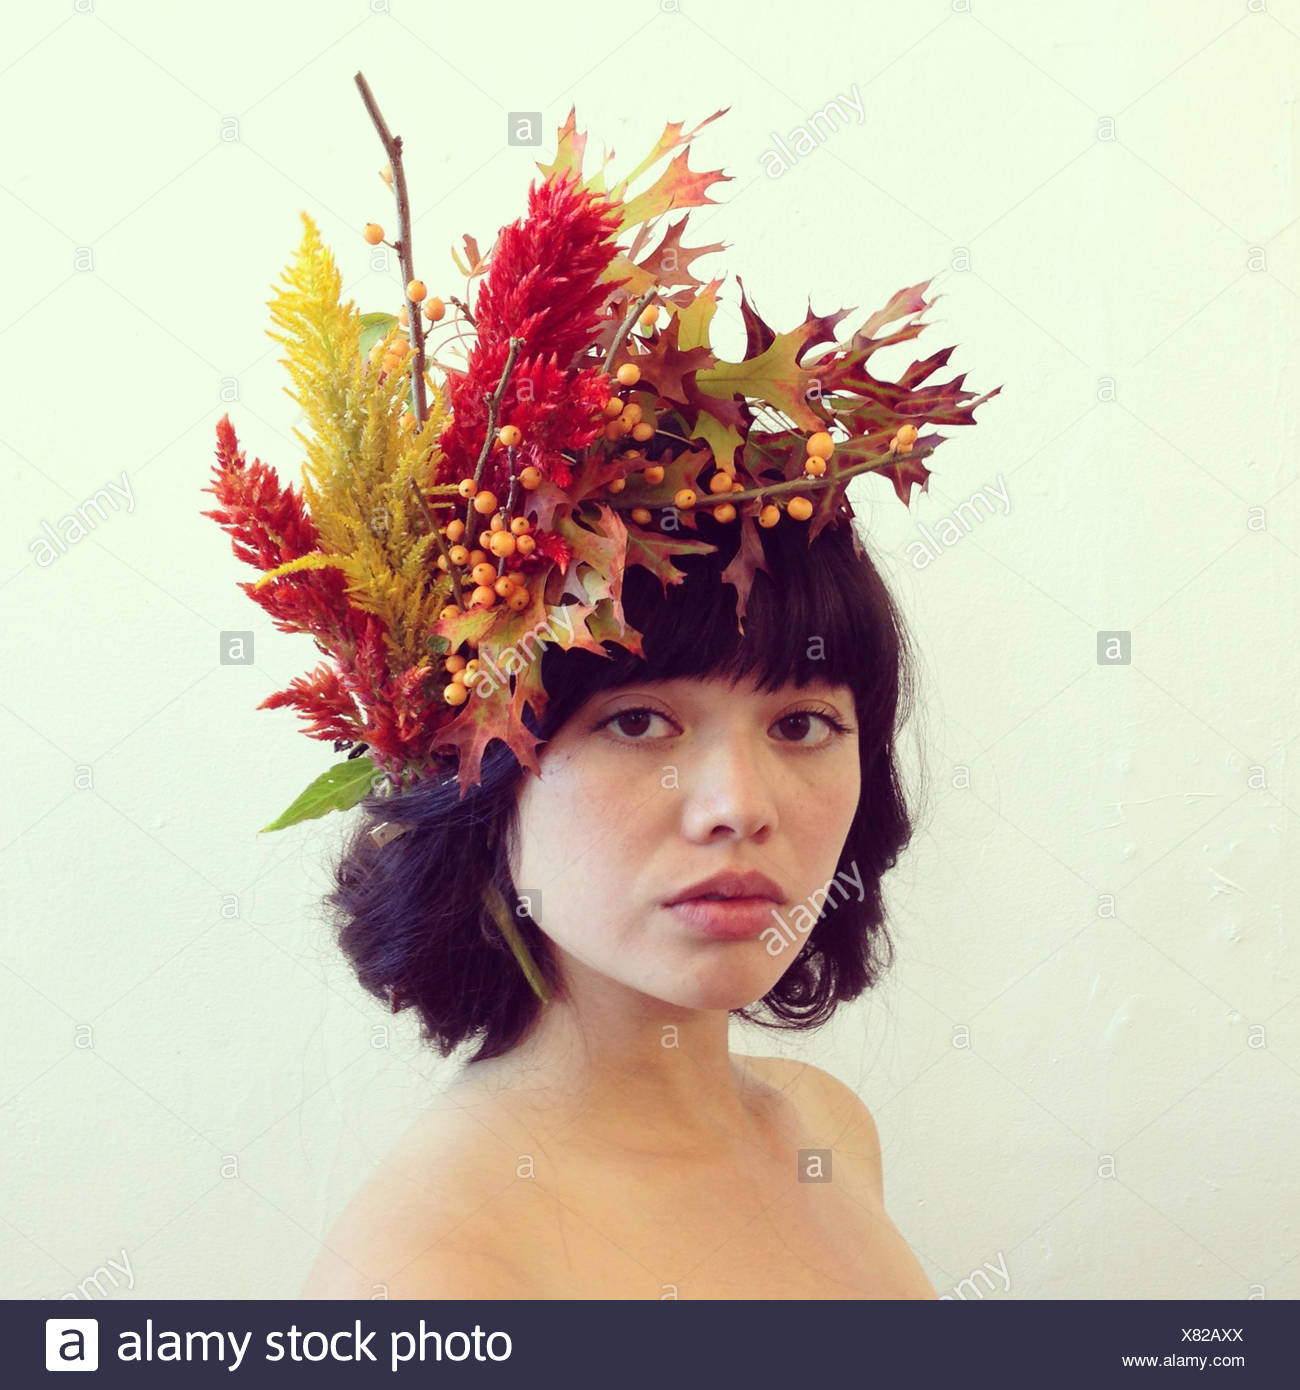 Portrait of a woman wearing a floral headdress - Stock Image